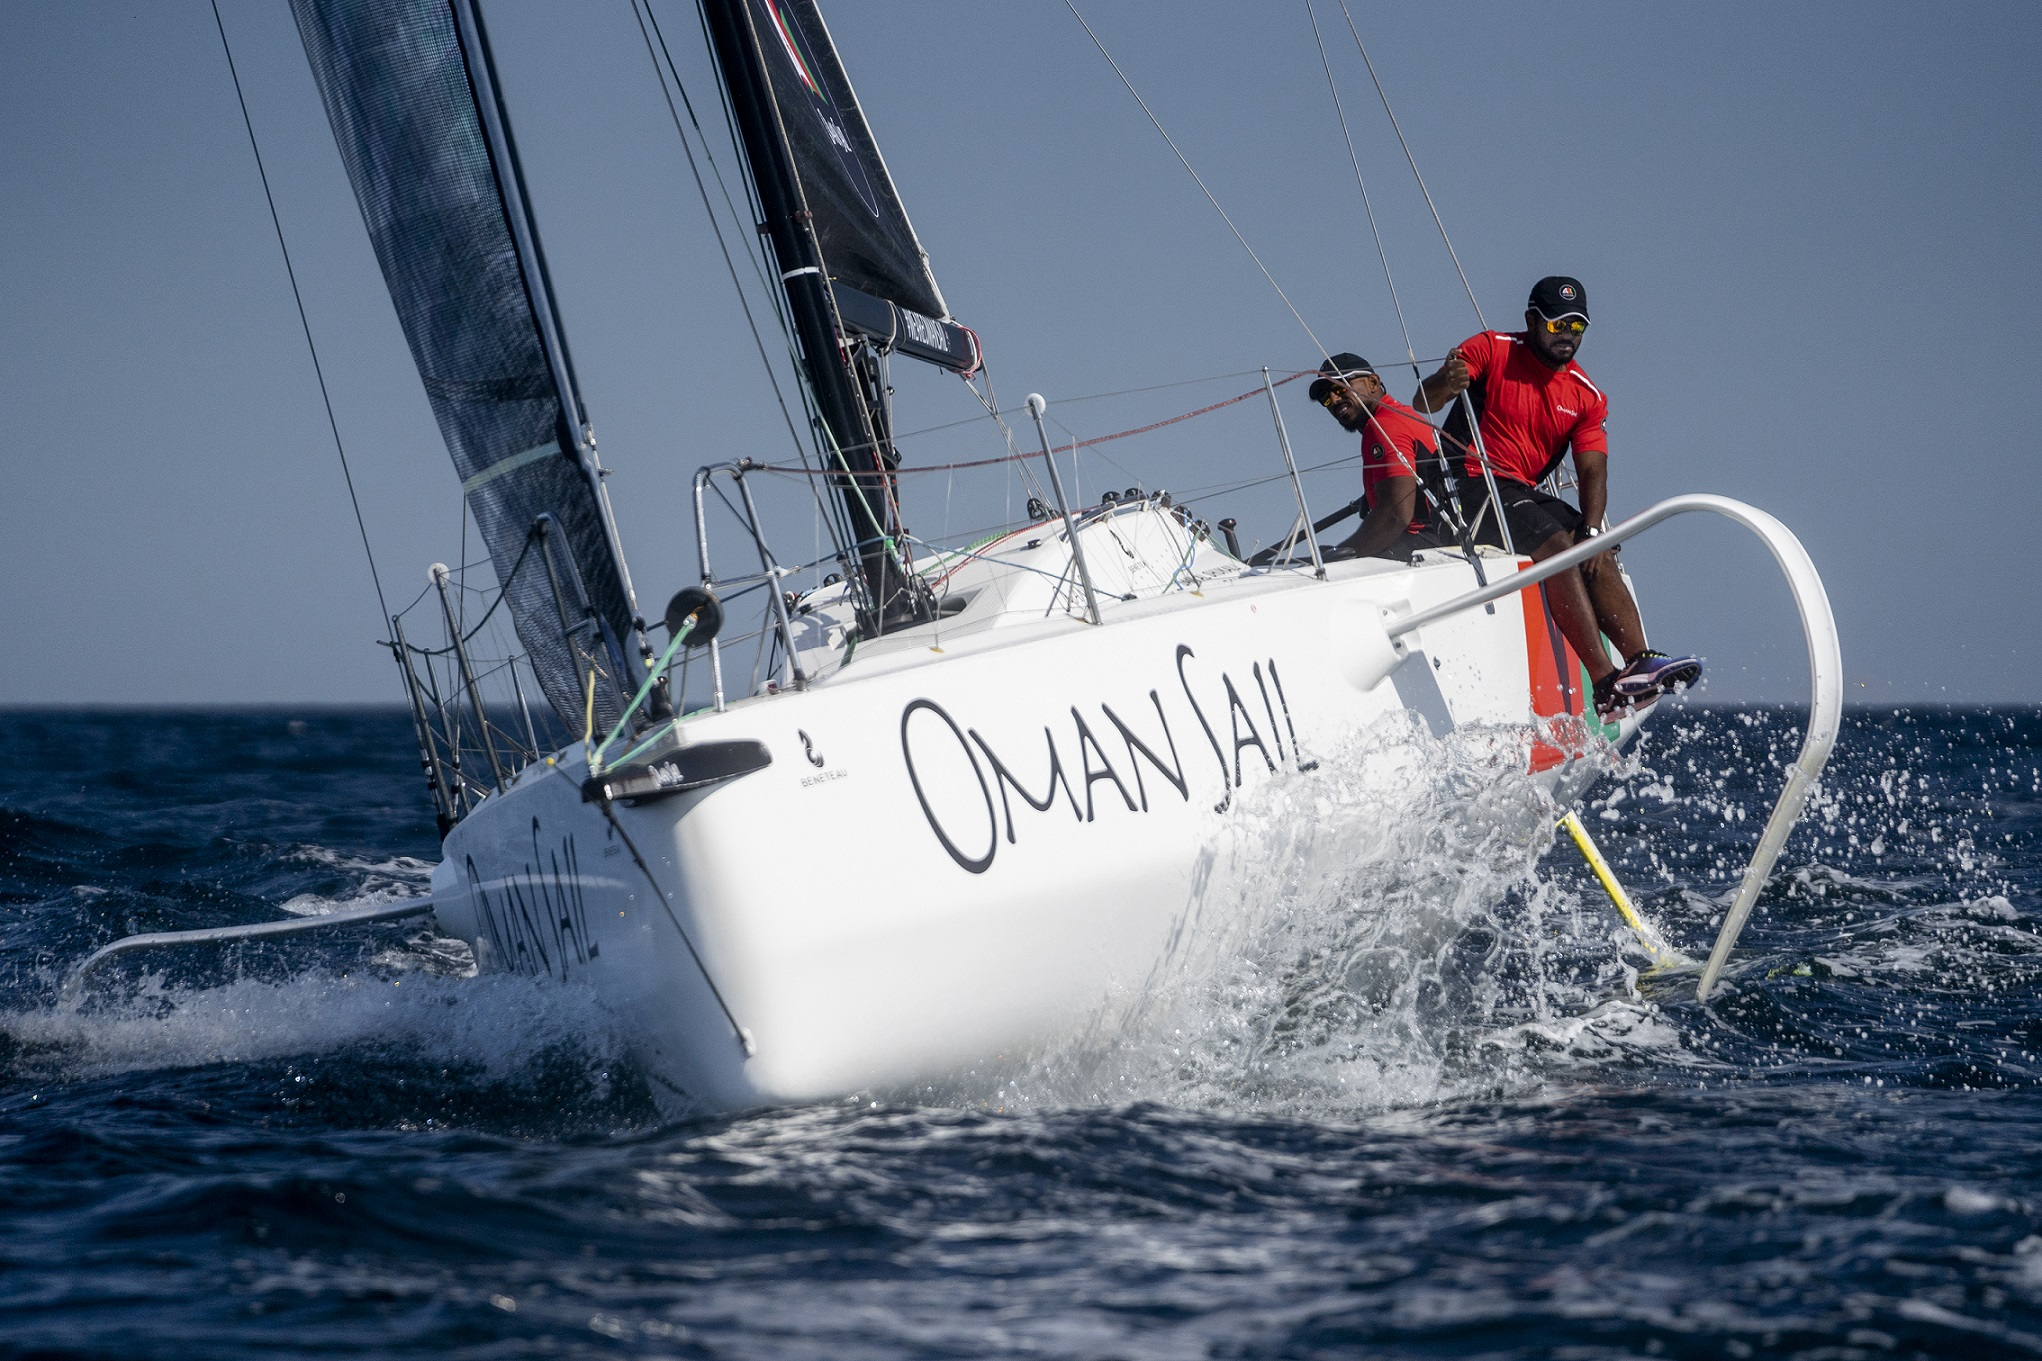 Oman Sail duo prepare for challenge of classic French coastal race